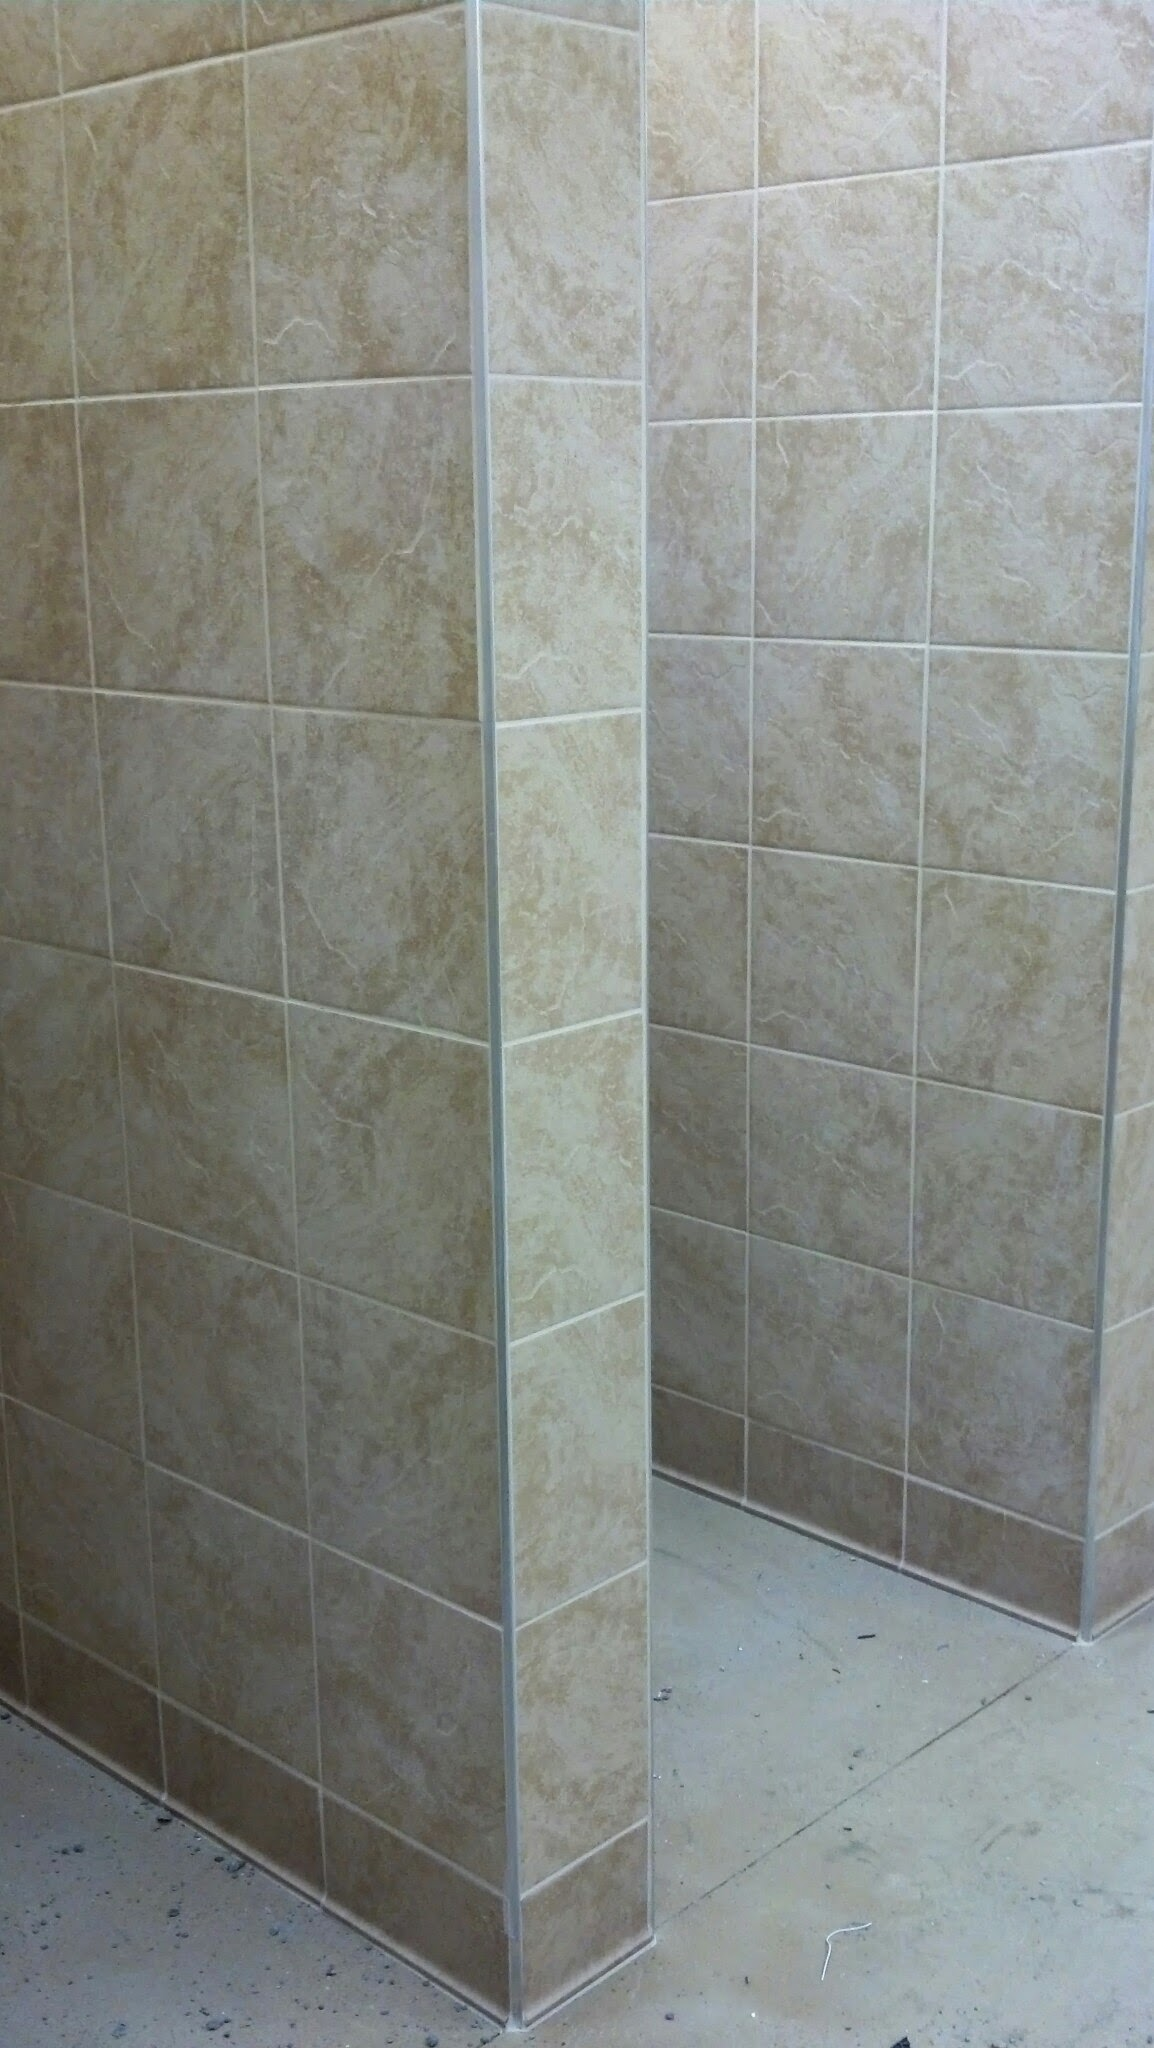 4-28-14 Tile in Showers